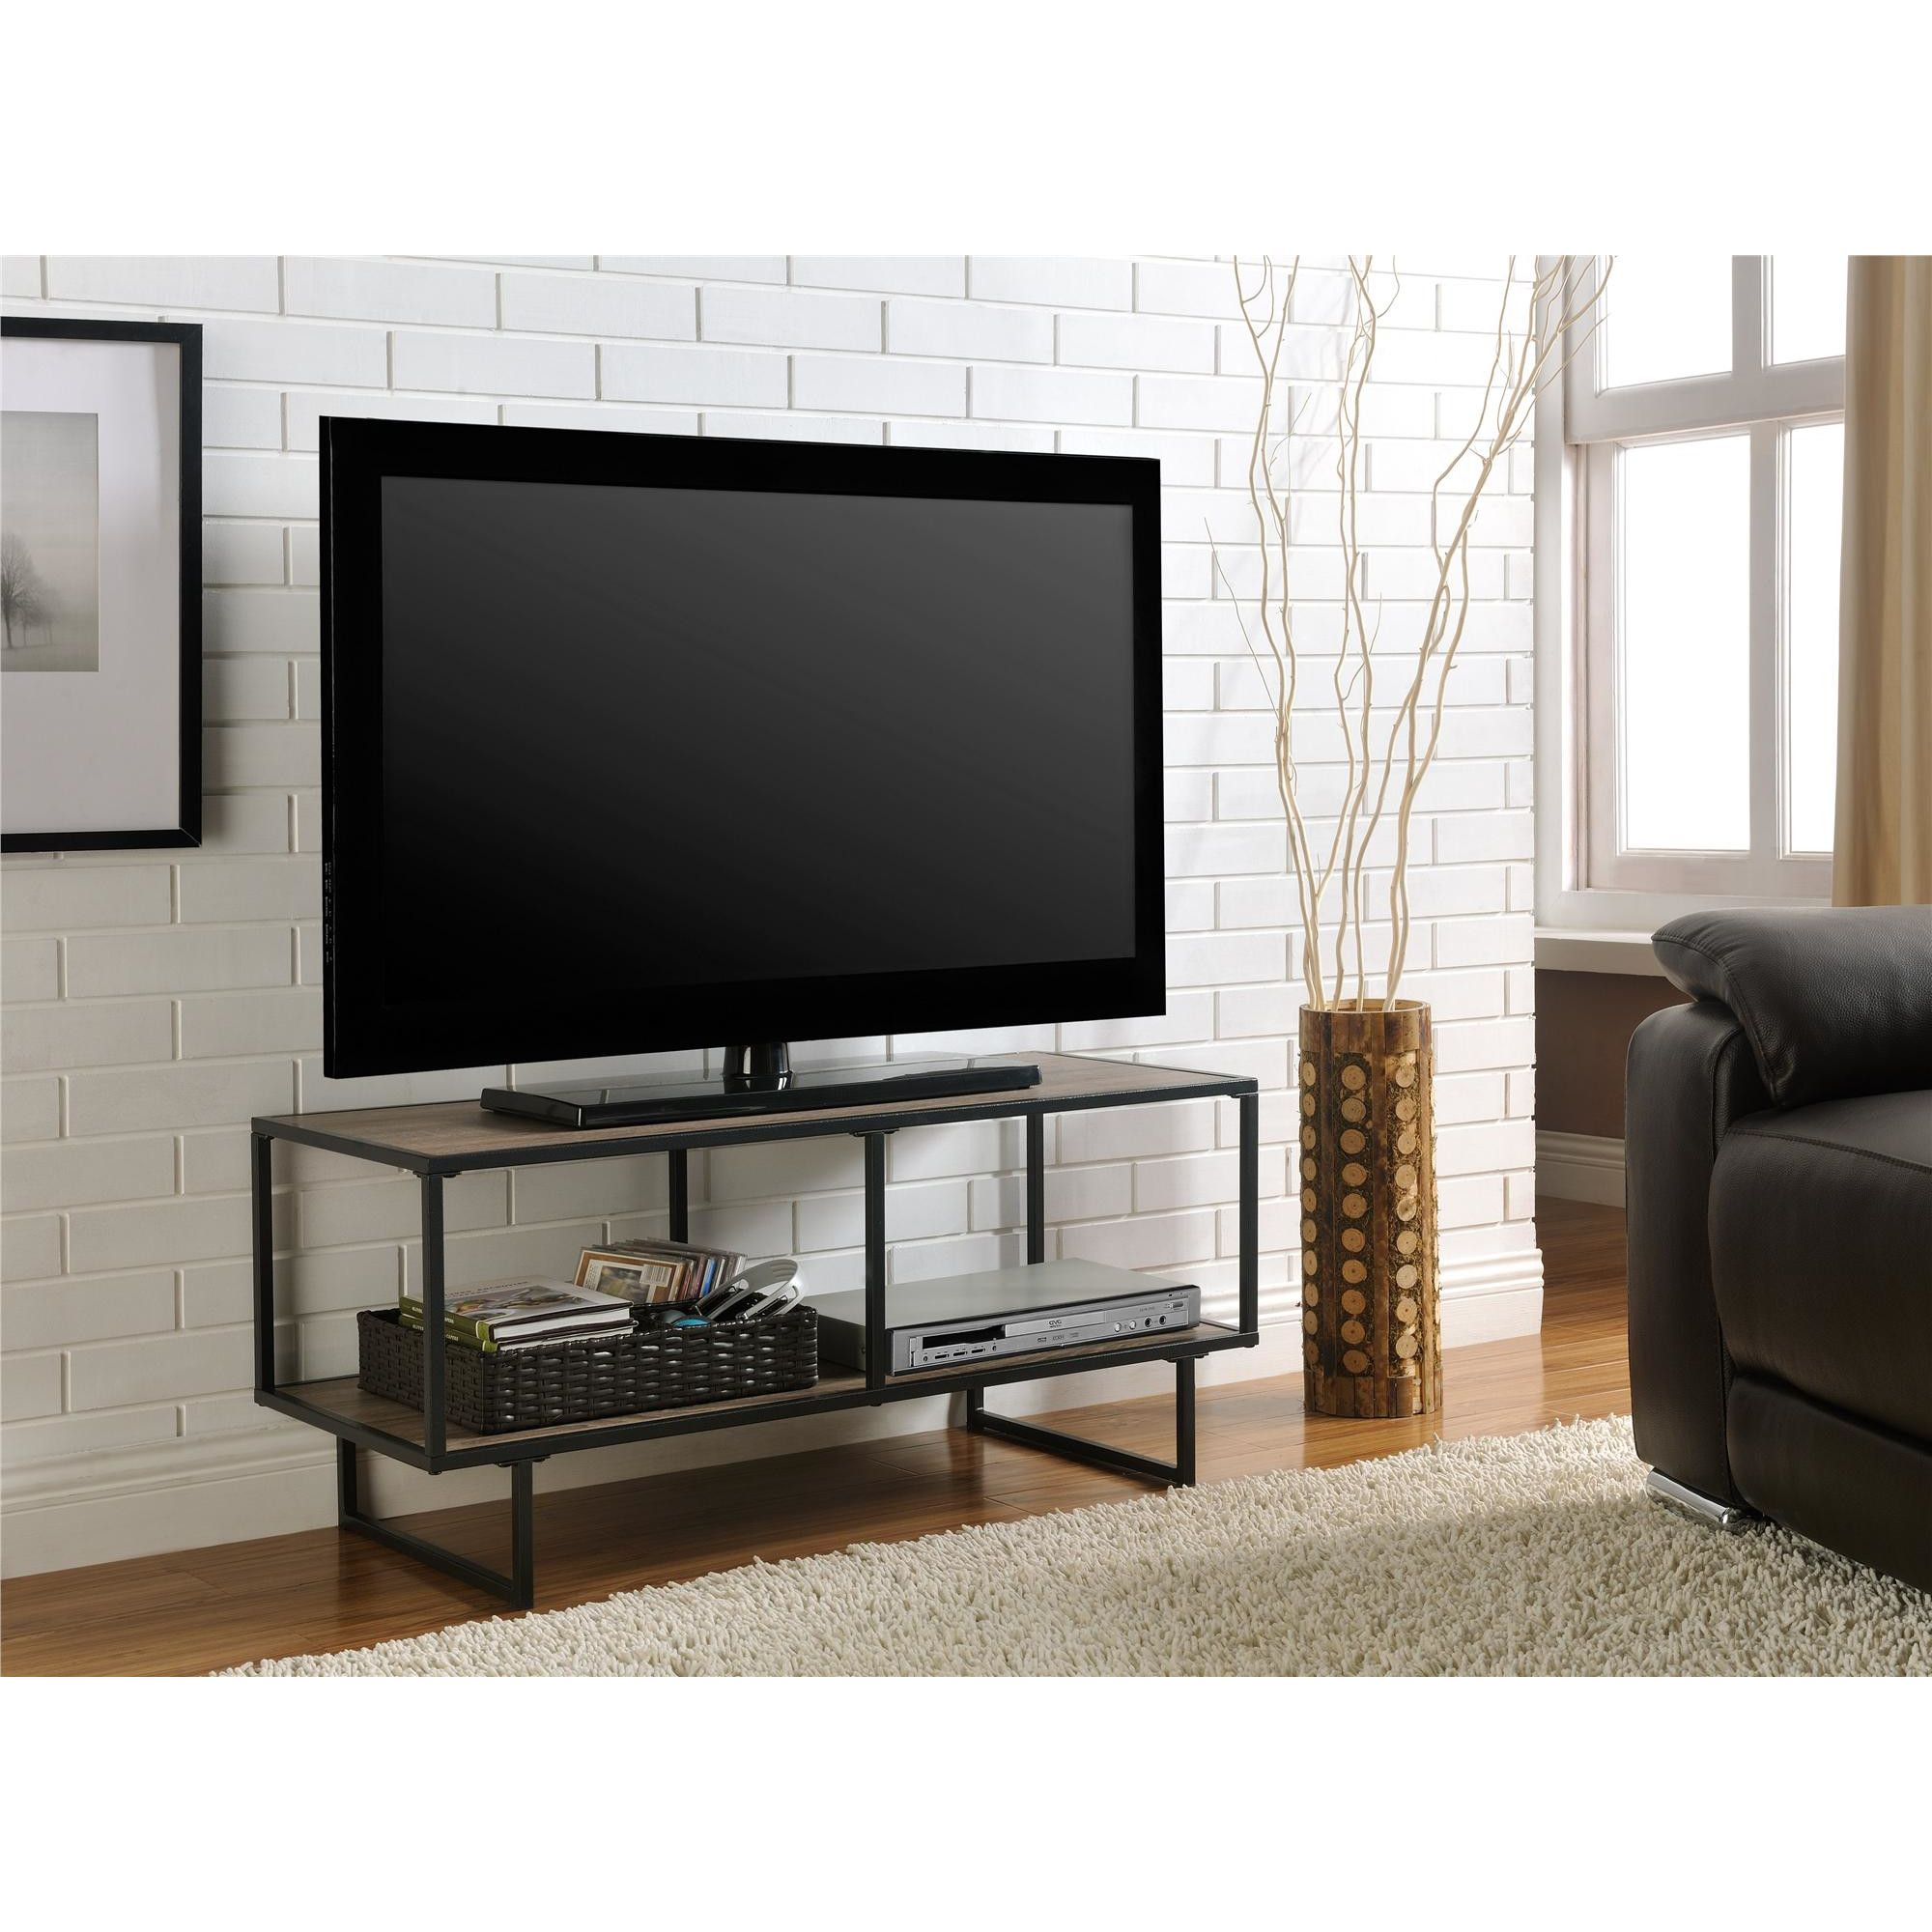 Home Loft Concepts Emmett Tv Stand Furniture Living Space